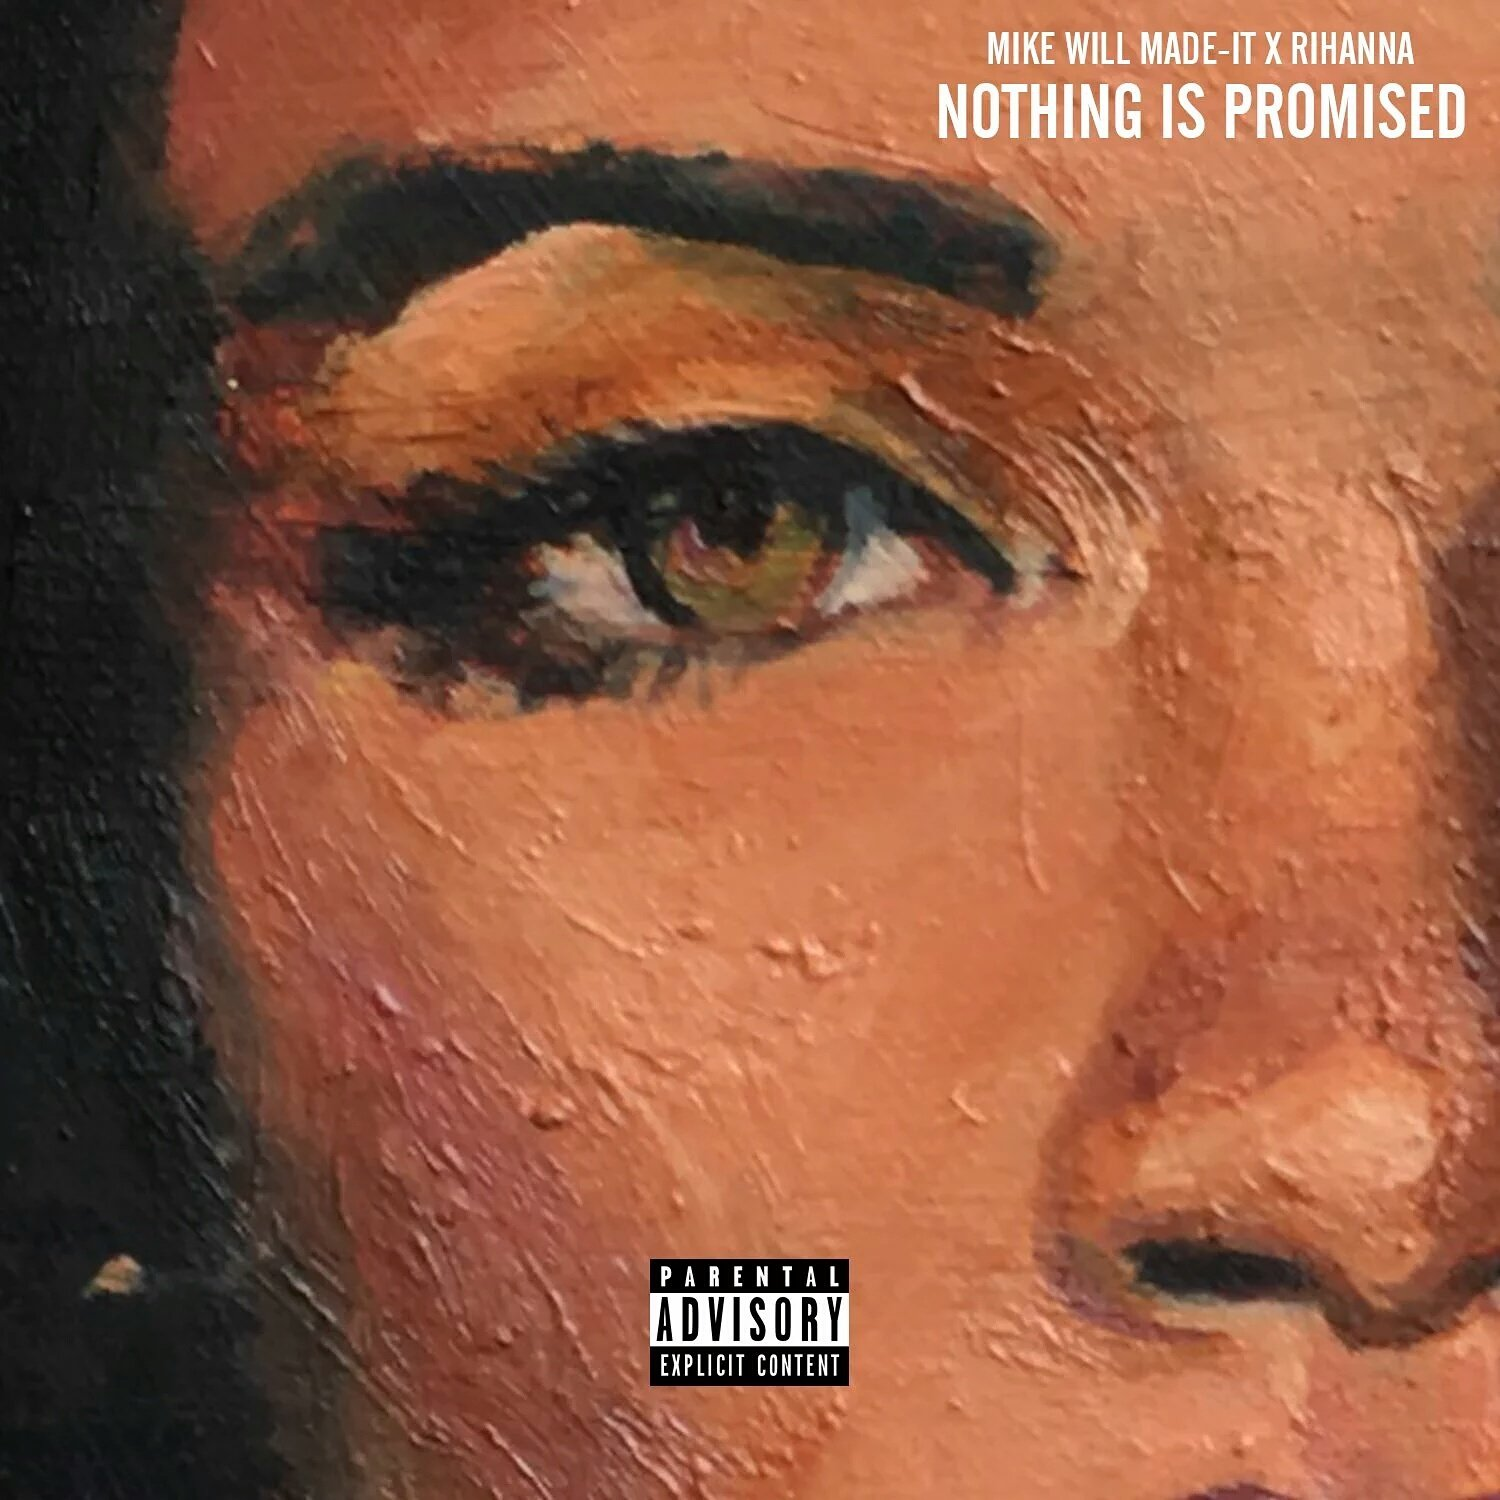 Listen to #NOTHINGISPROMISED on iTunes now! Thank you @mikewillmadeit. https://t.co/nx2HLEZCq7 https://t.co/av6jH2cqdx